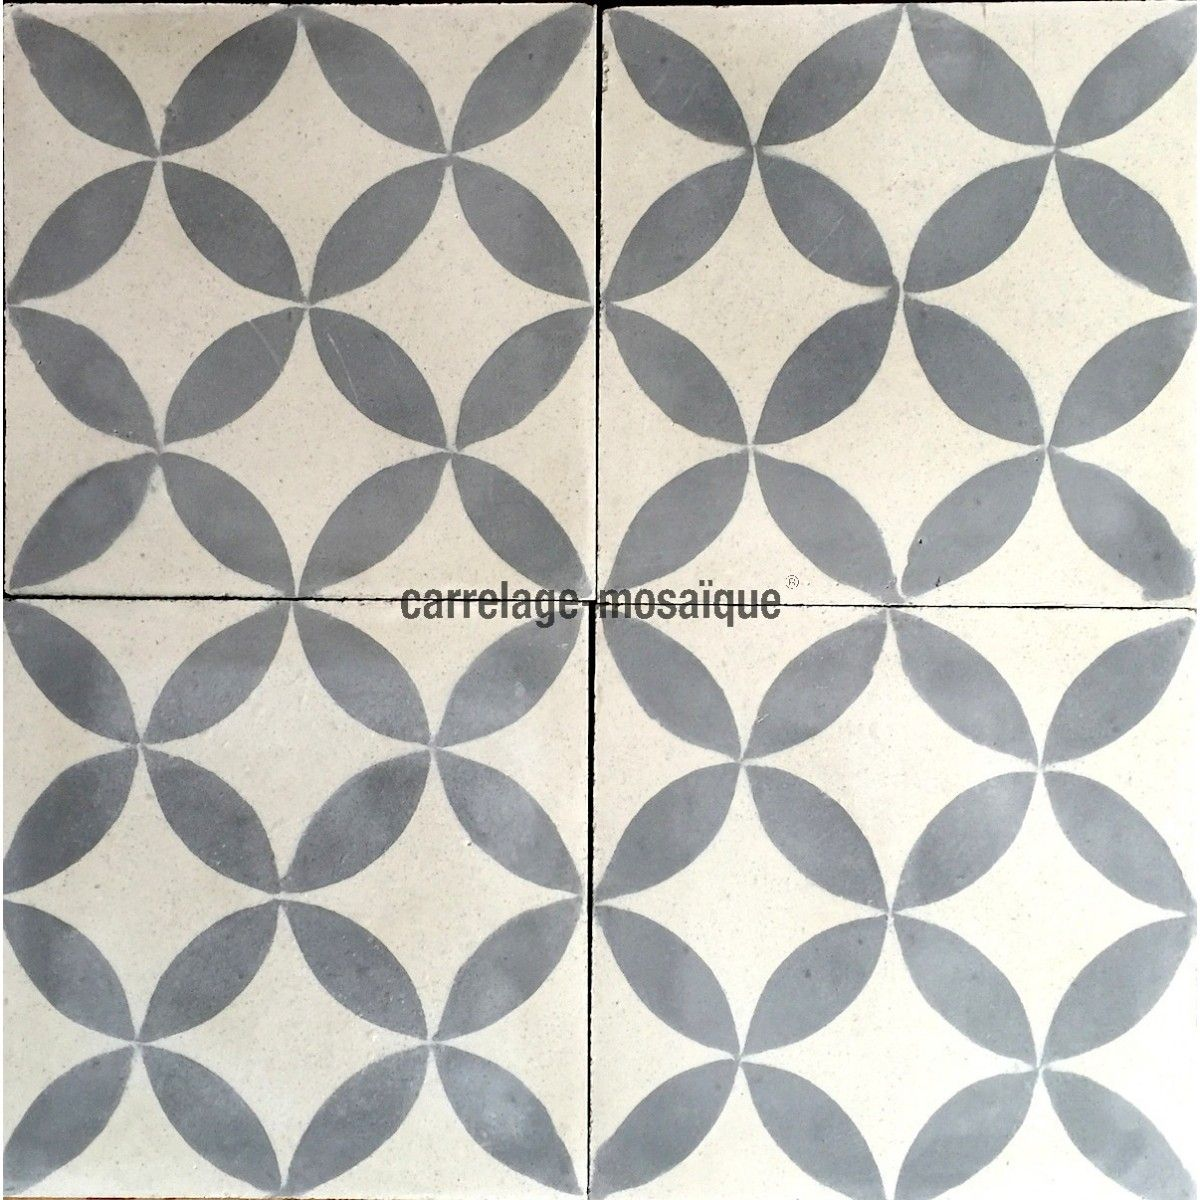 carrelage ciment pas cher 1m2 modele sampa gris carrelage mosaique carreaux ciment. Black Bedroom Furniture Sets. Home Design Ideas